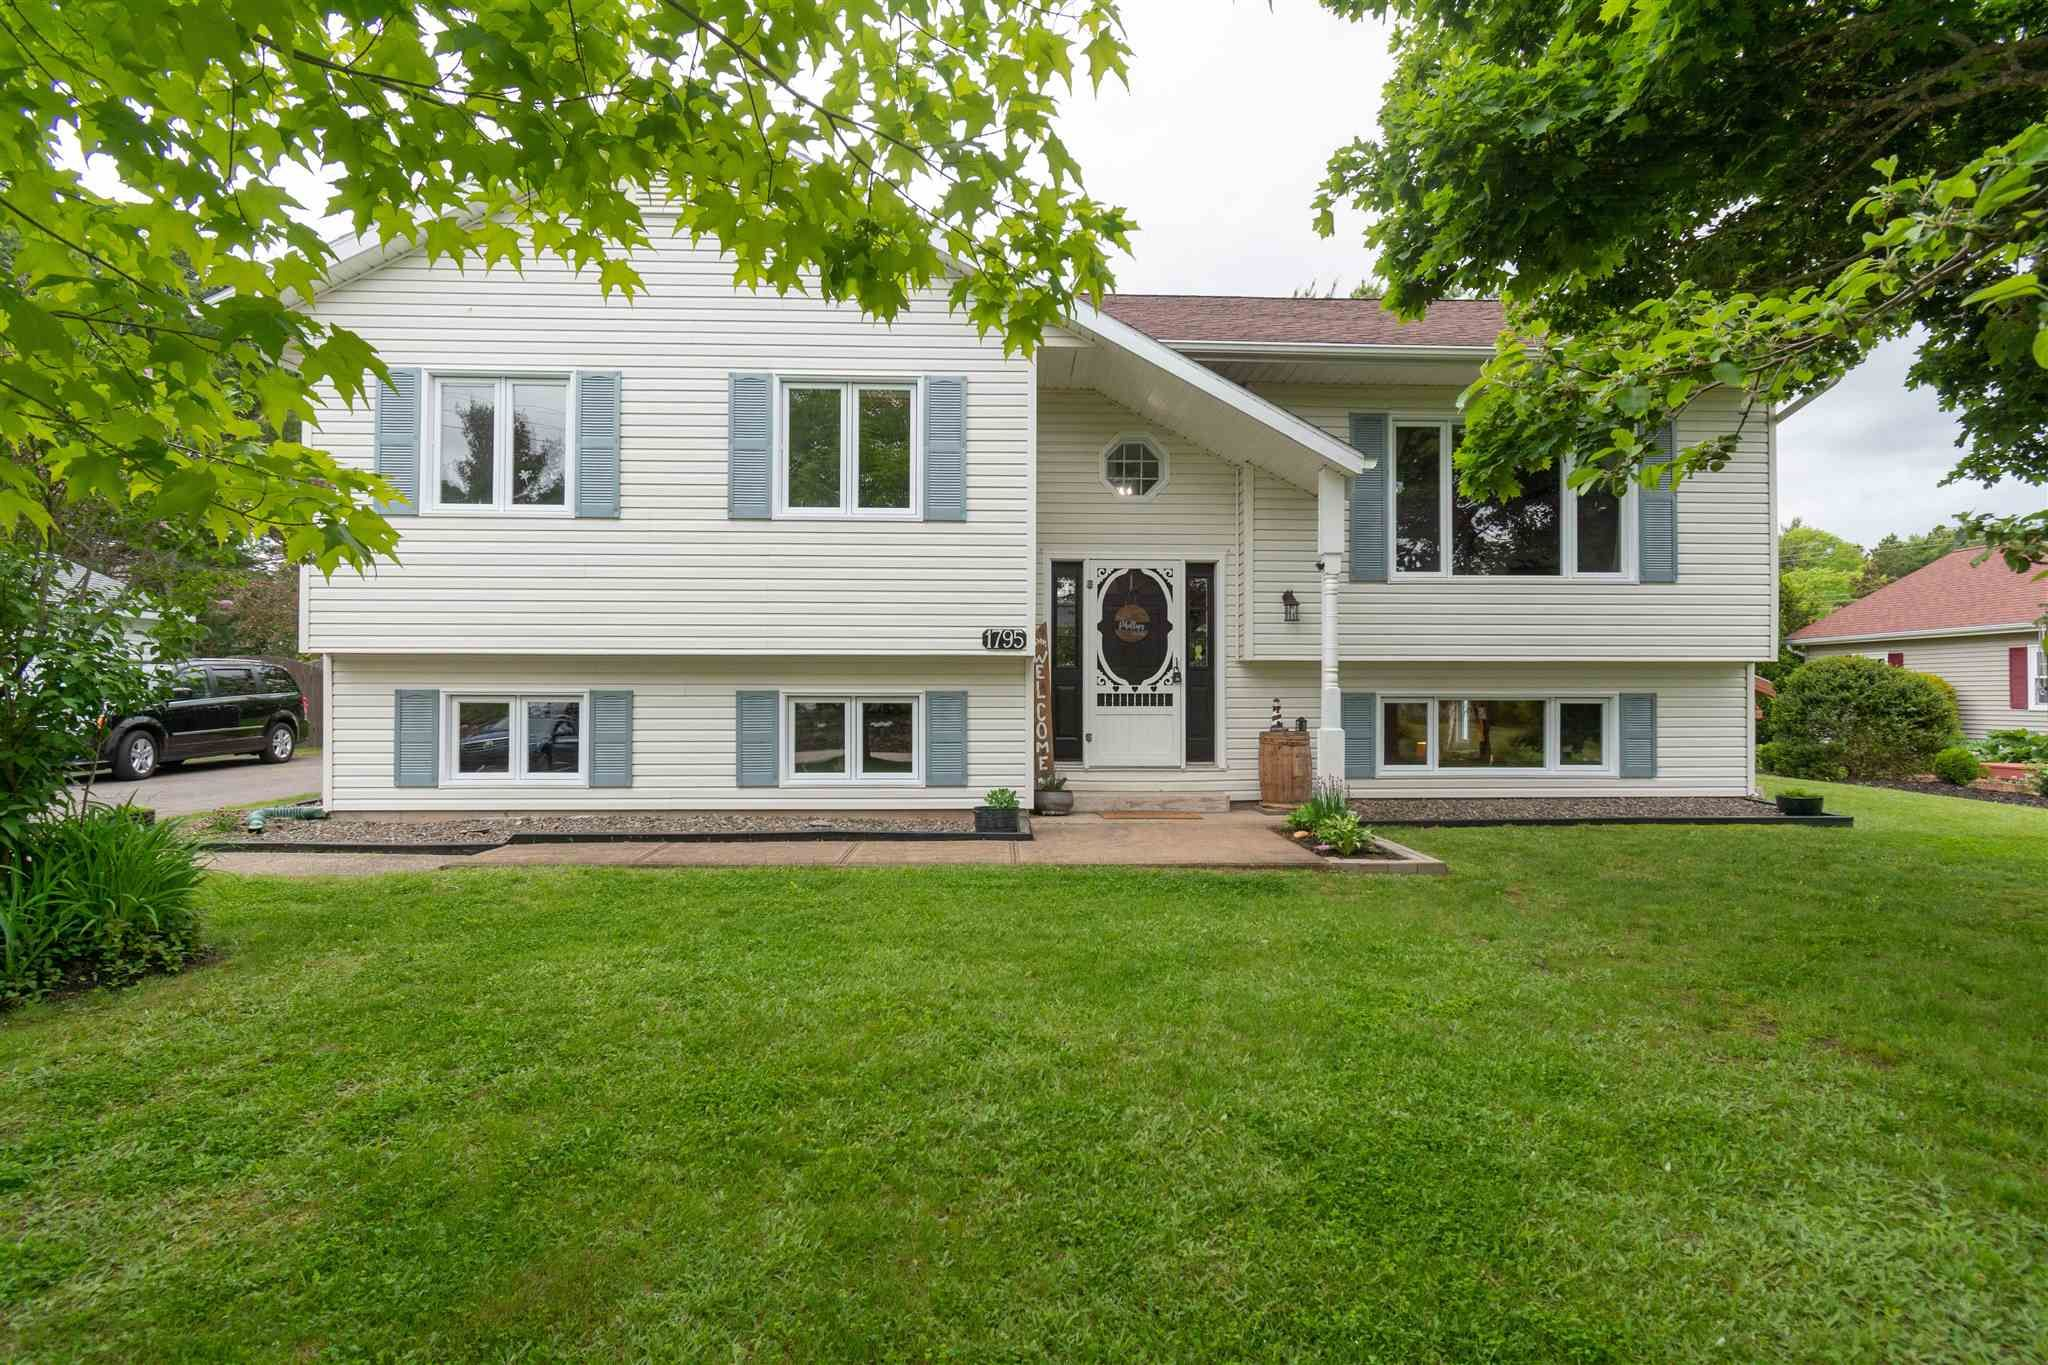 Main Photo: 1795 Drummond Drive in Kingston: 404-Kings County Residential for sale (Annapolis Valley)  : MLS®# 202113847